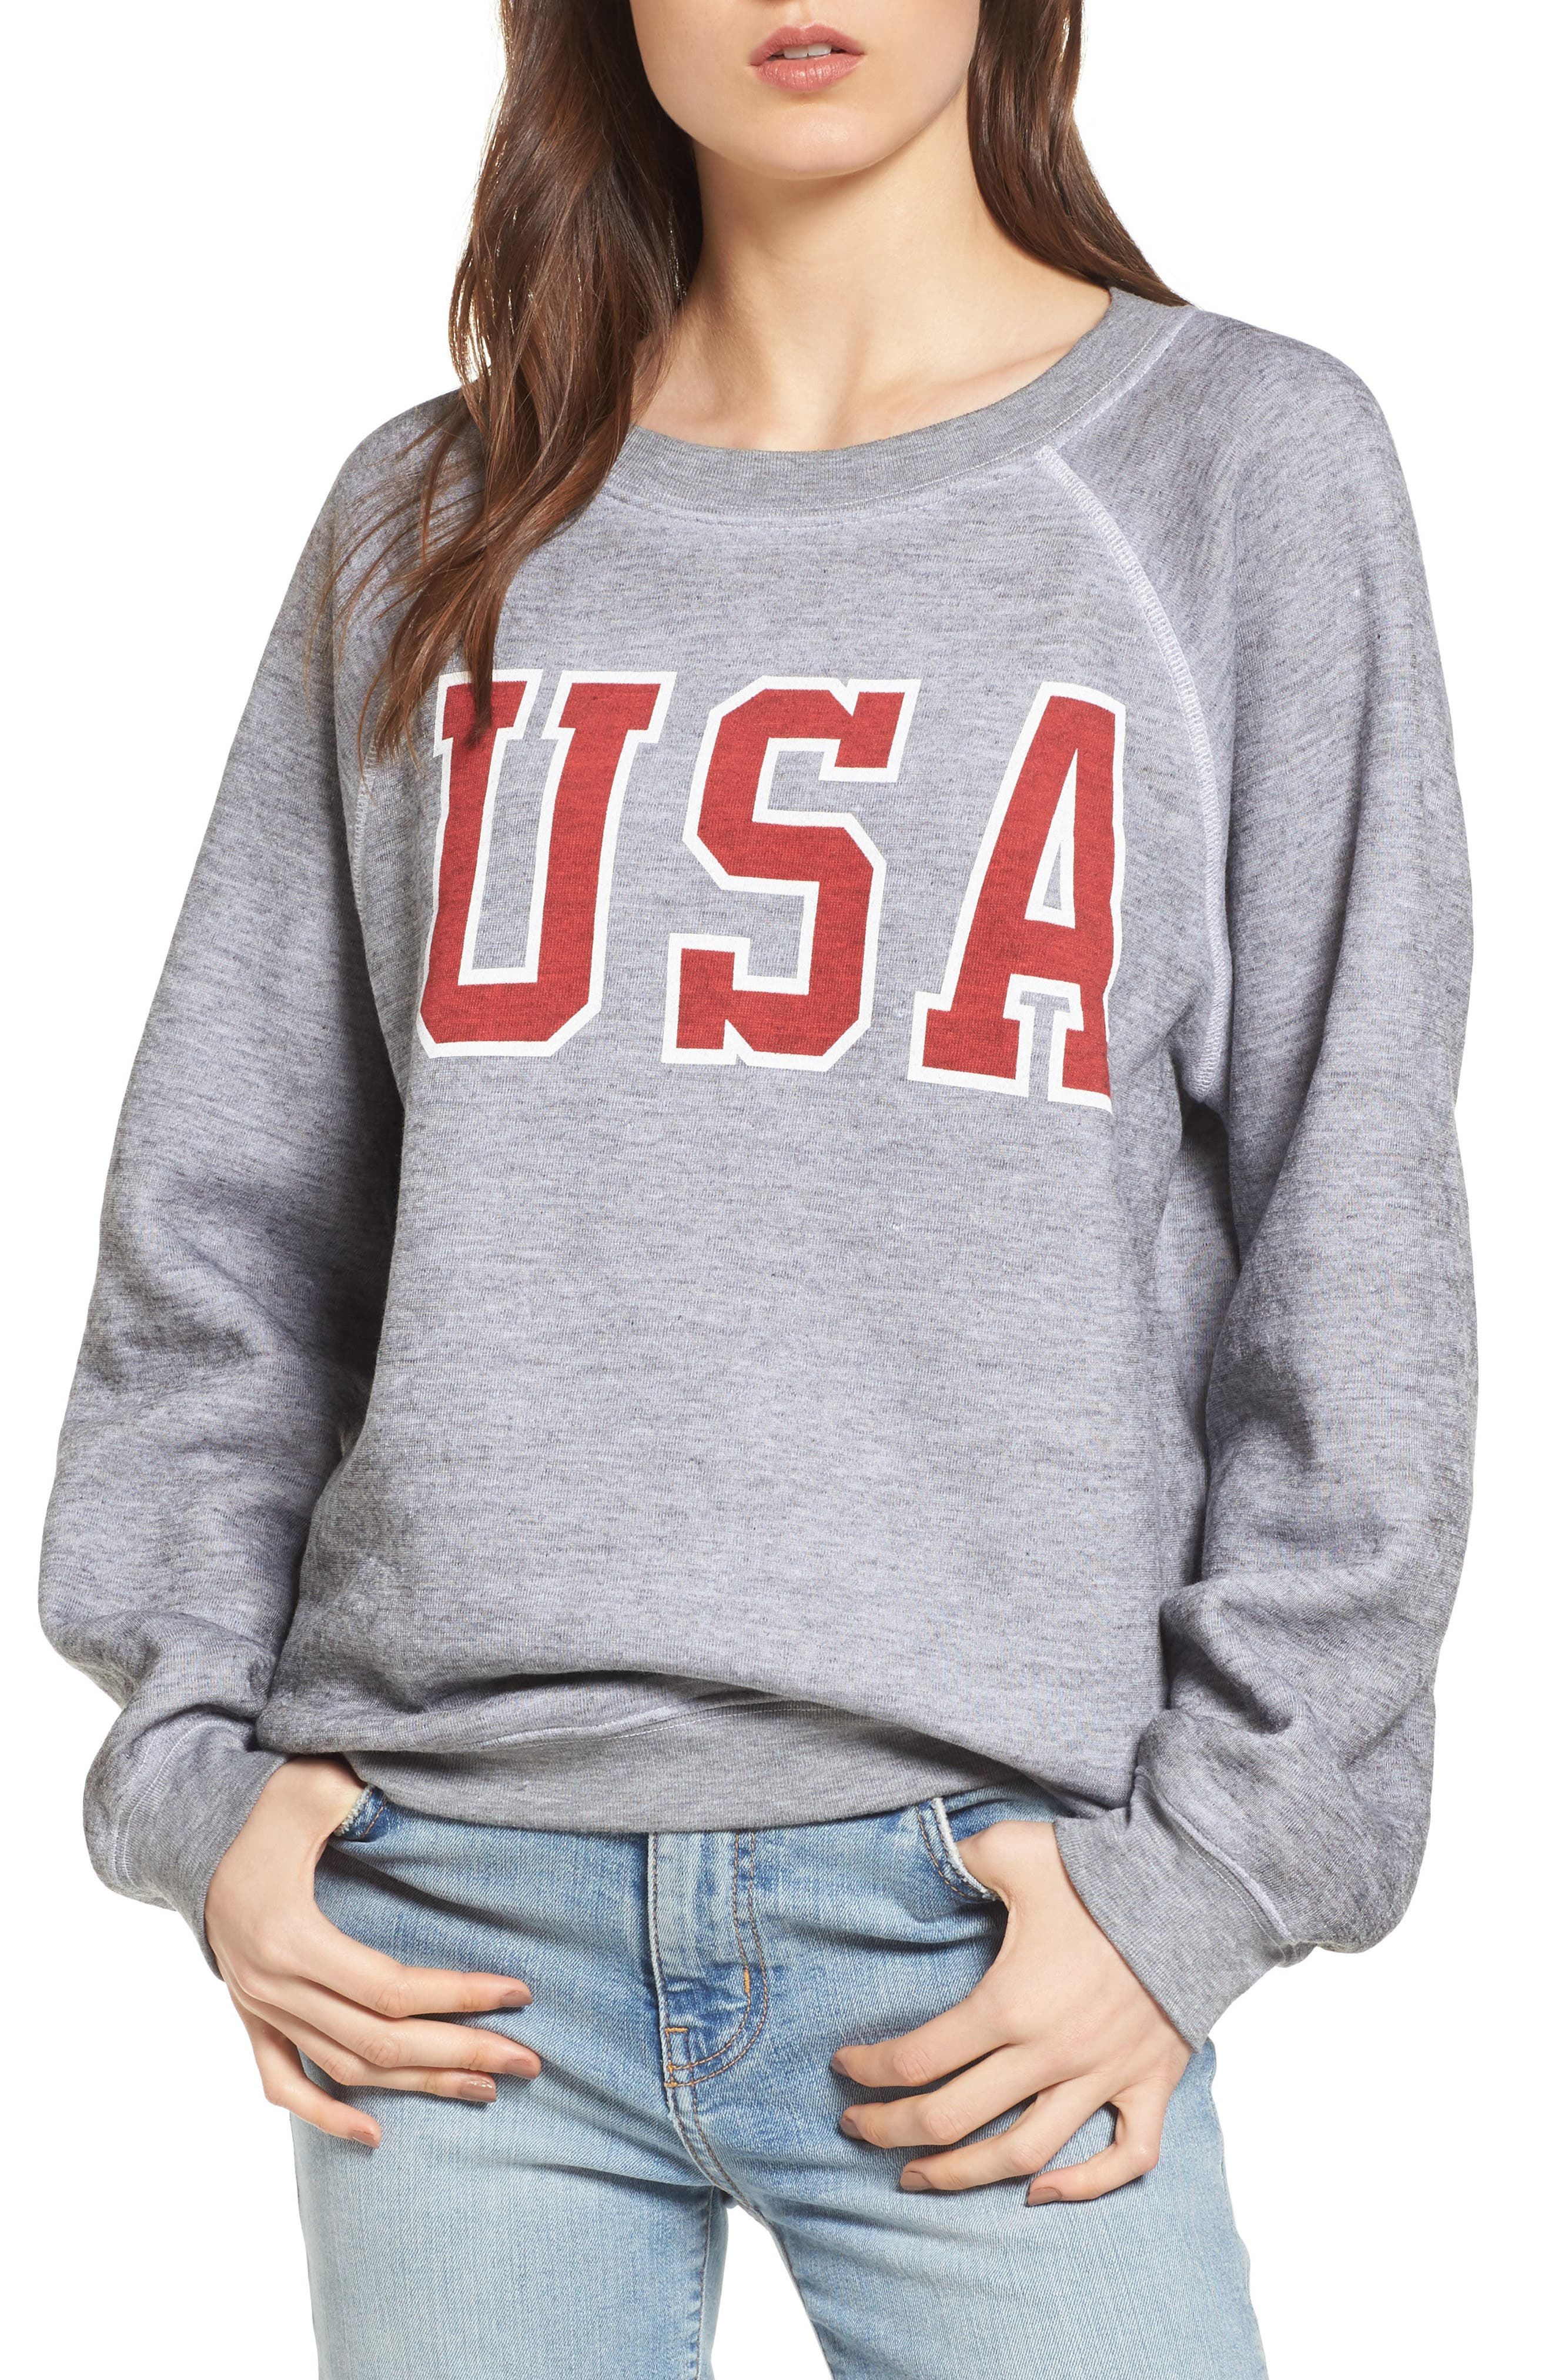 Main Image - Wildfox Baggy Beach Jumper - USA Pullover